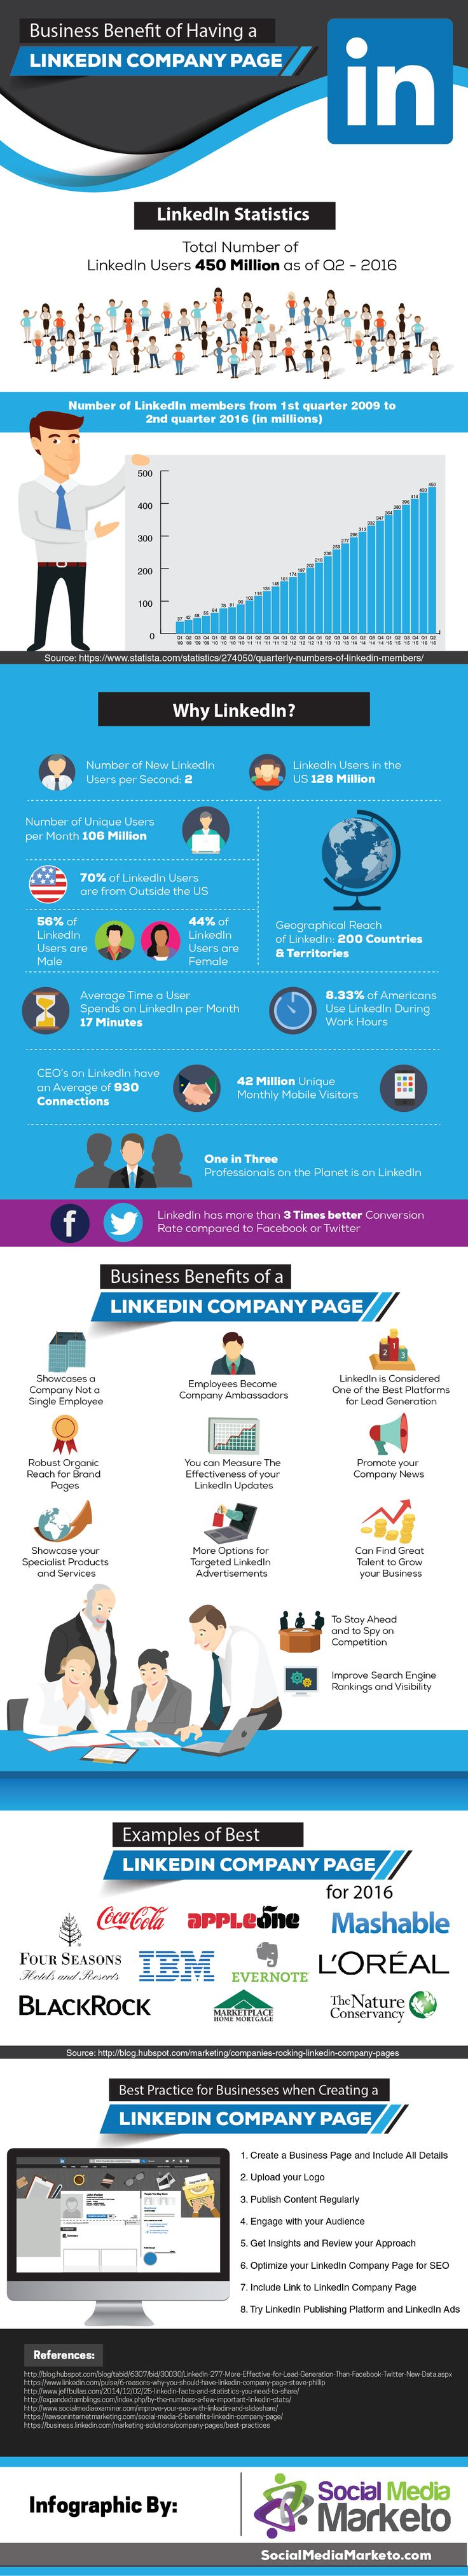 An infographic from Social Media Today illustrating the Business Benefits of a LinkedIn Company Page.  To receive our Pinterest eNewsletter, click on pin.